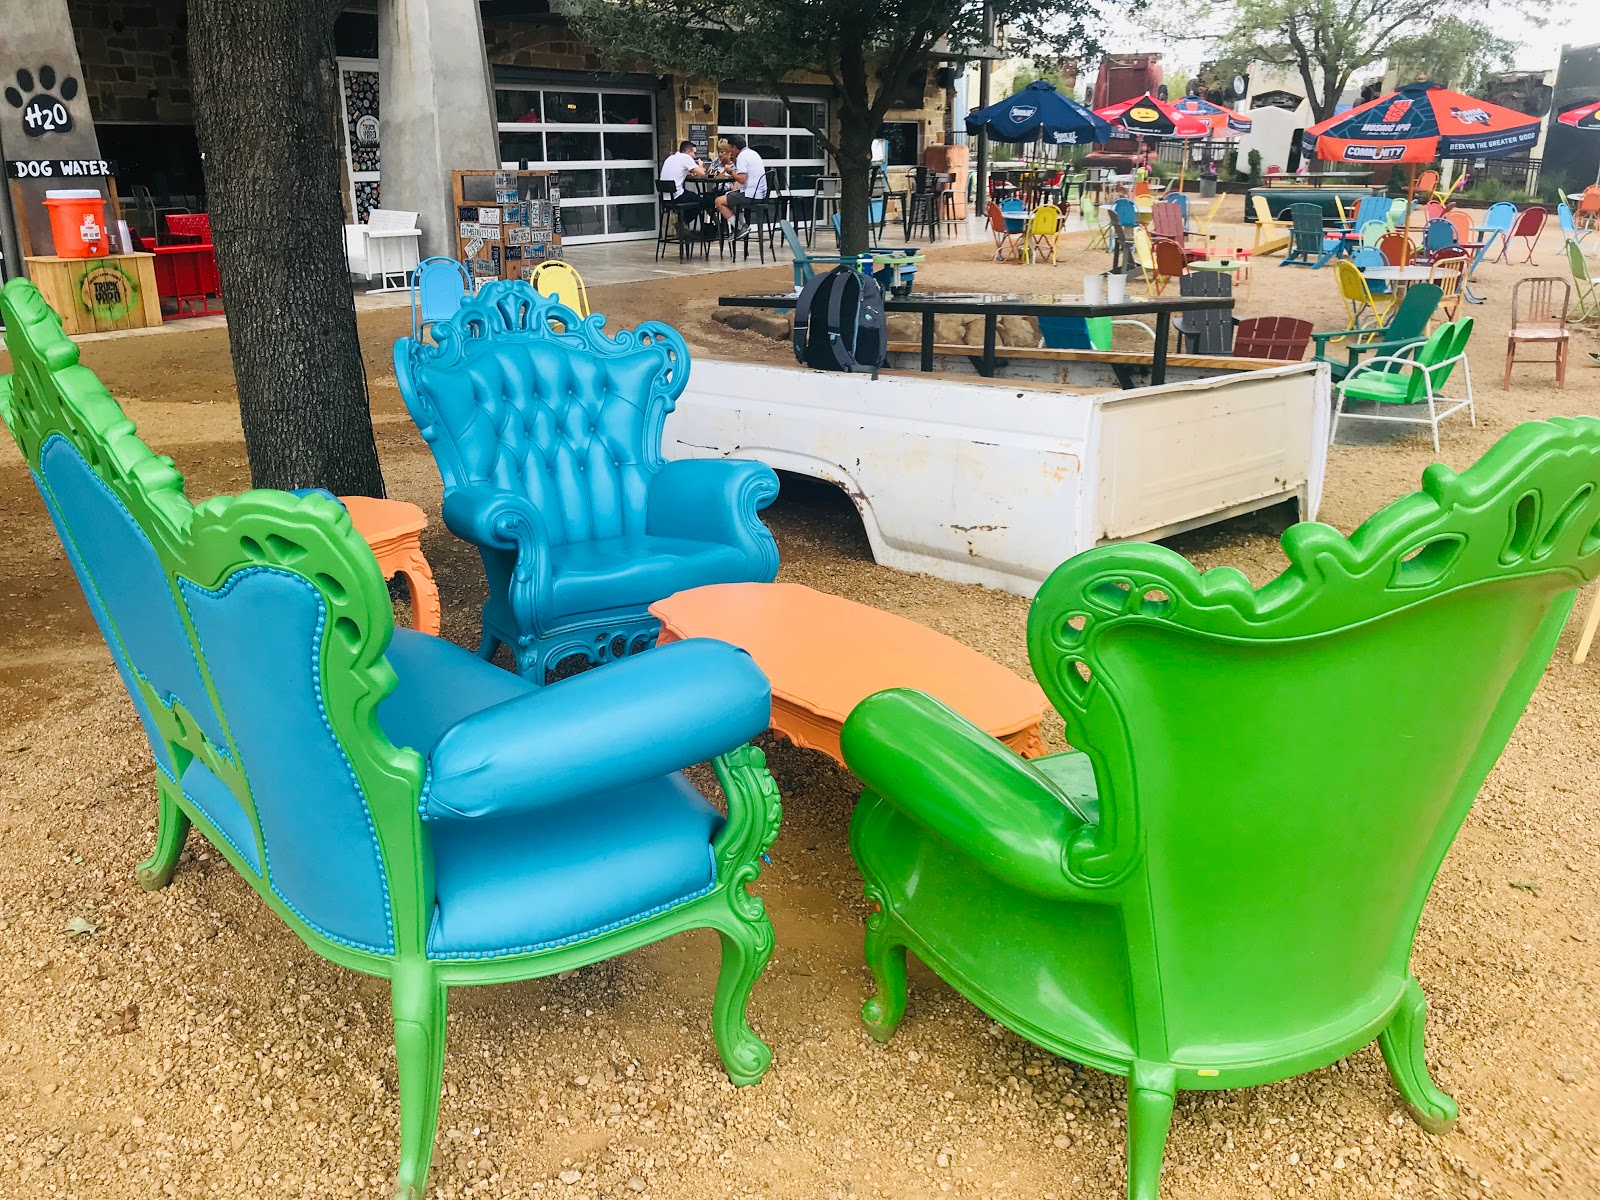 Image: Colorful chairs at the truck yard in Colony Texas